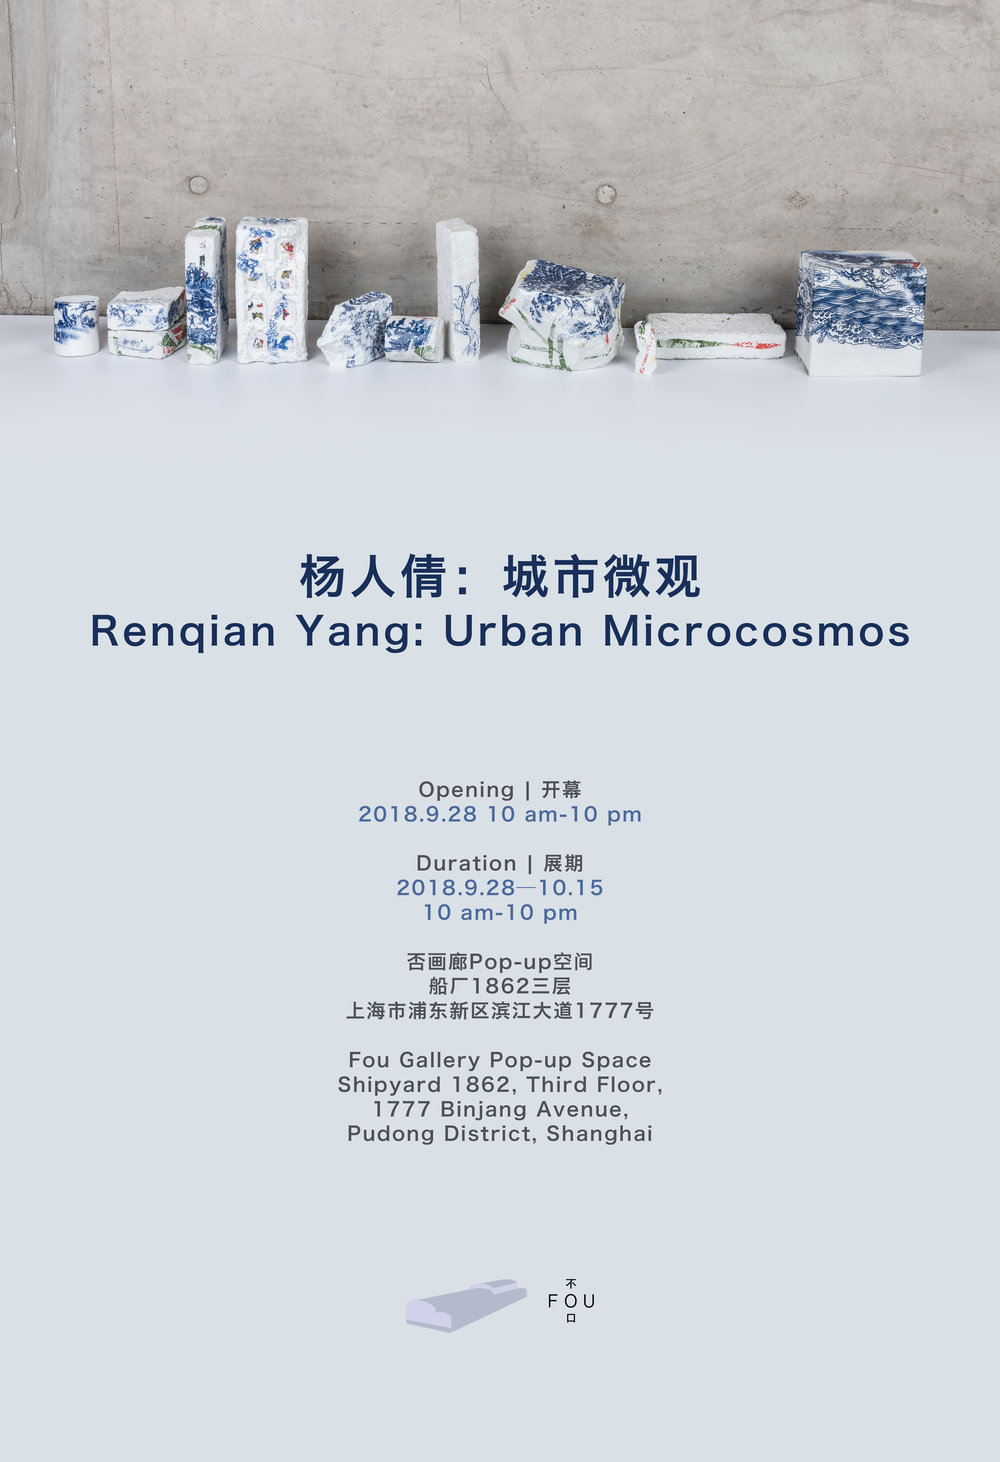 Renqian Yang: Urban Microcosmos Exhibition Time:  September 28–October 15, 2018  Location:  Shipyard 1862, 1777 Binjiang Avenue, Pudong District, Shanghai.